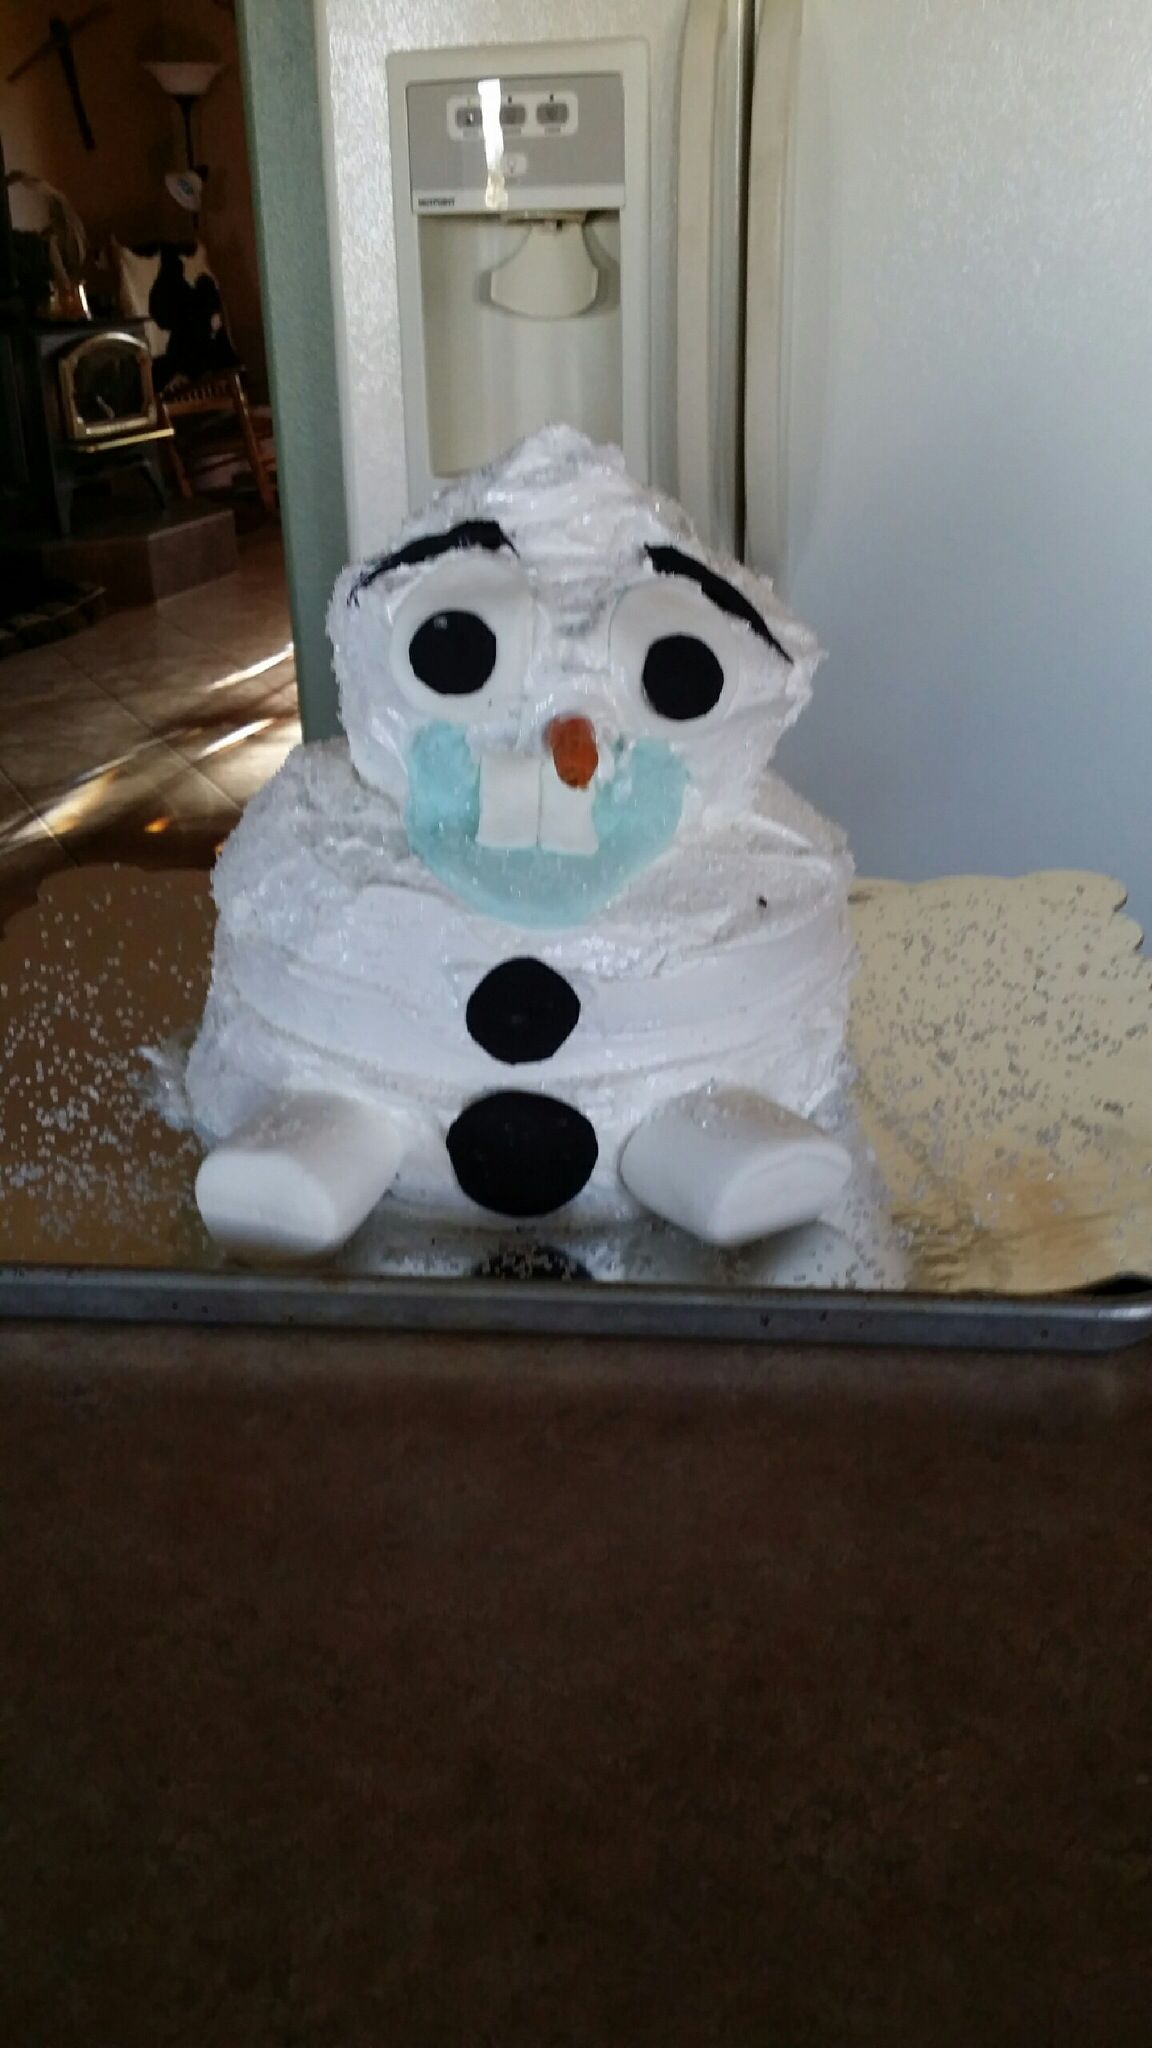 Olaf Cake Fail From Frozen With Anna And Elsa Great